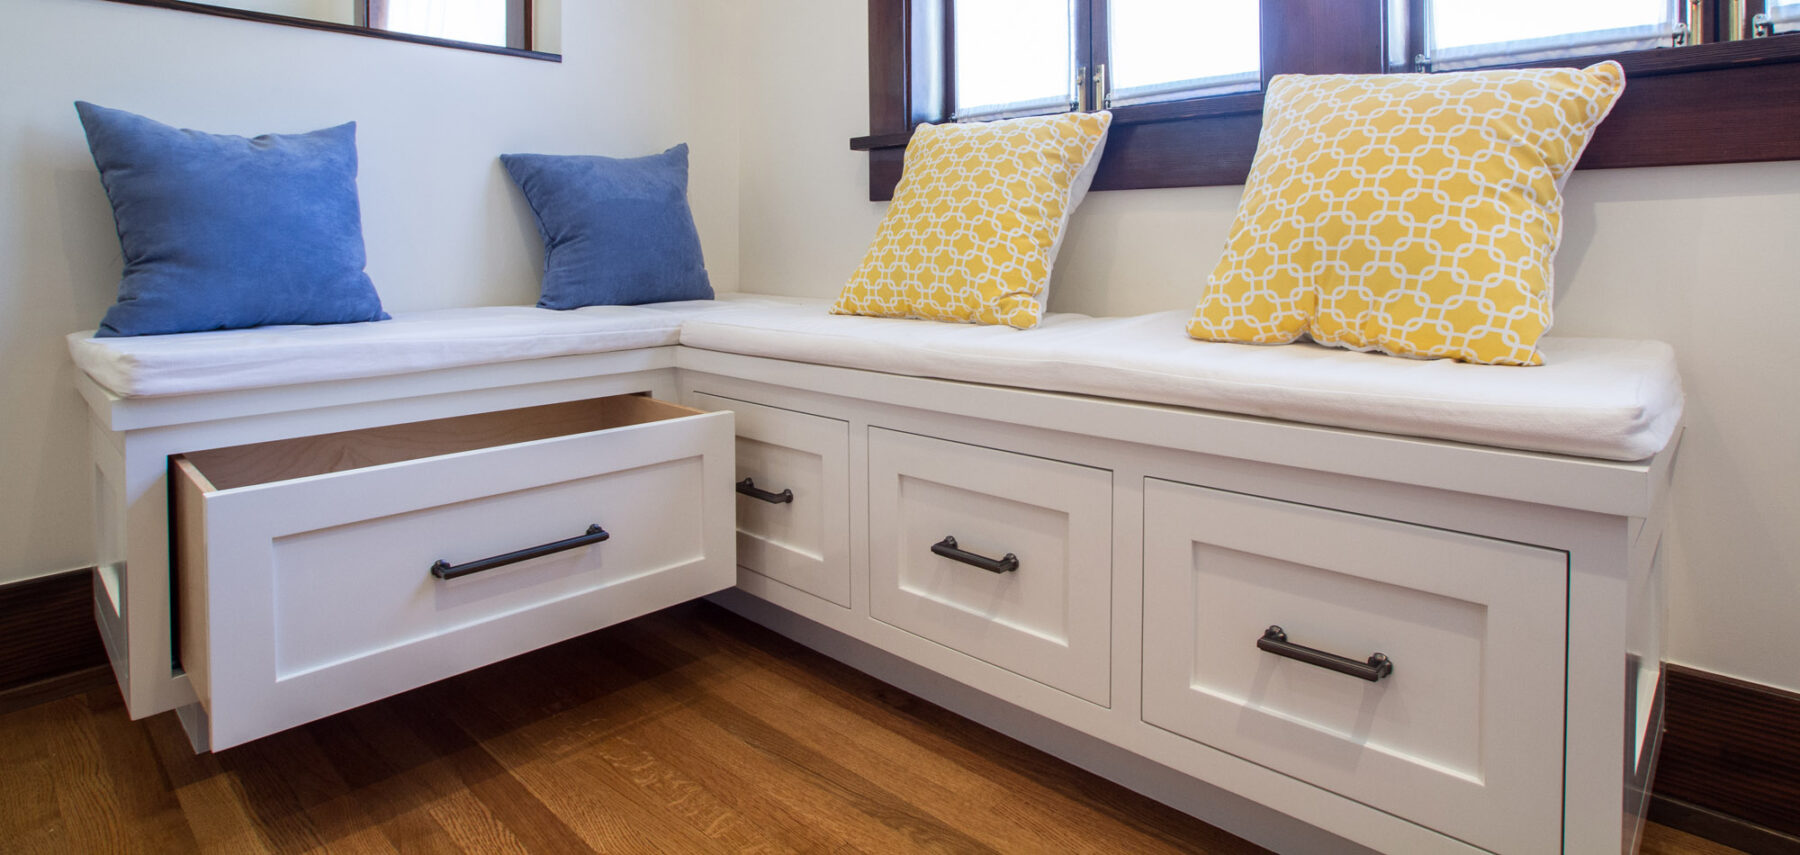 Breakfast Nook Bench Seating Drawers Nott Amp Associates